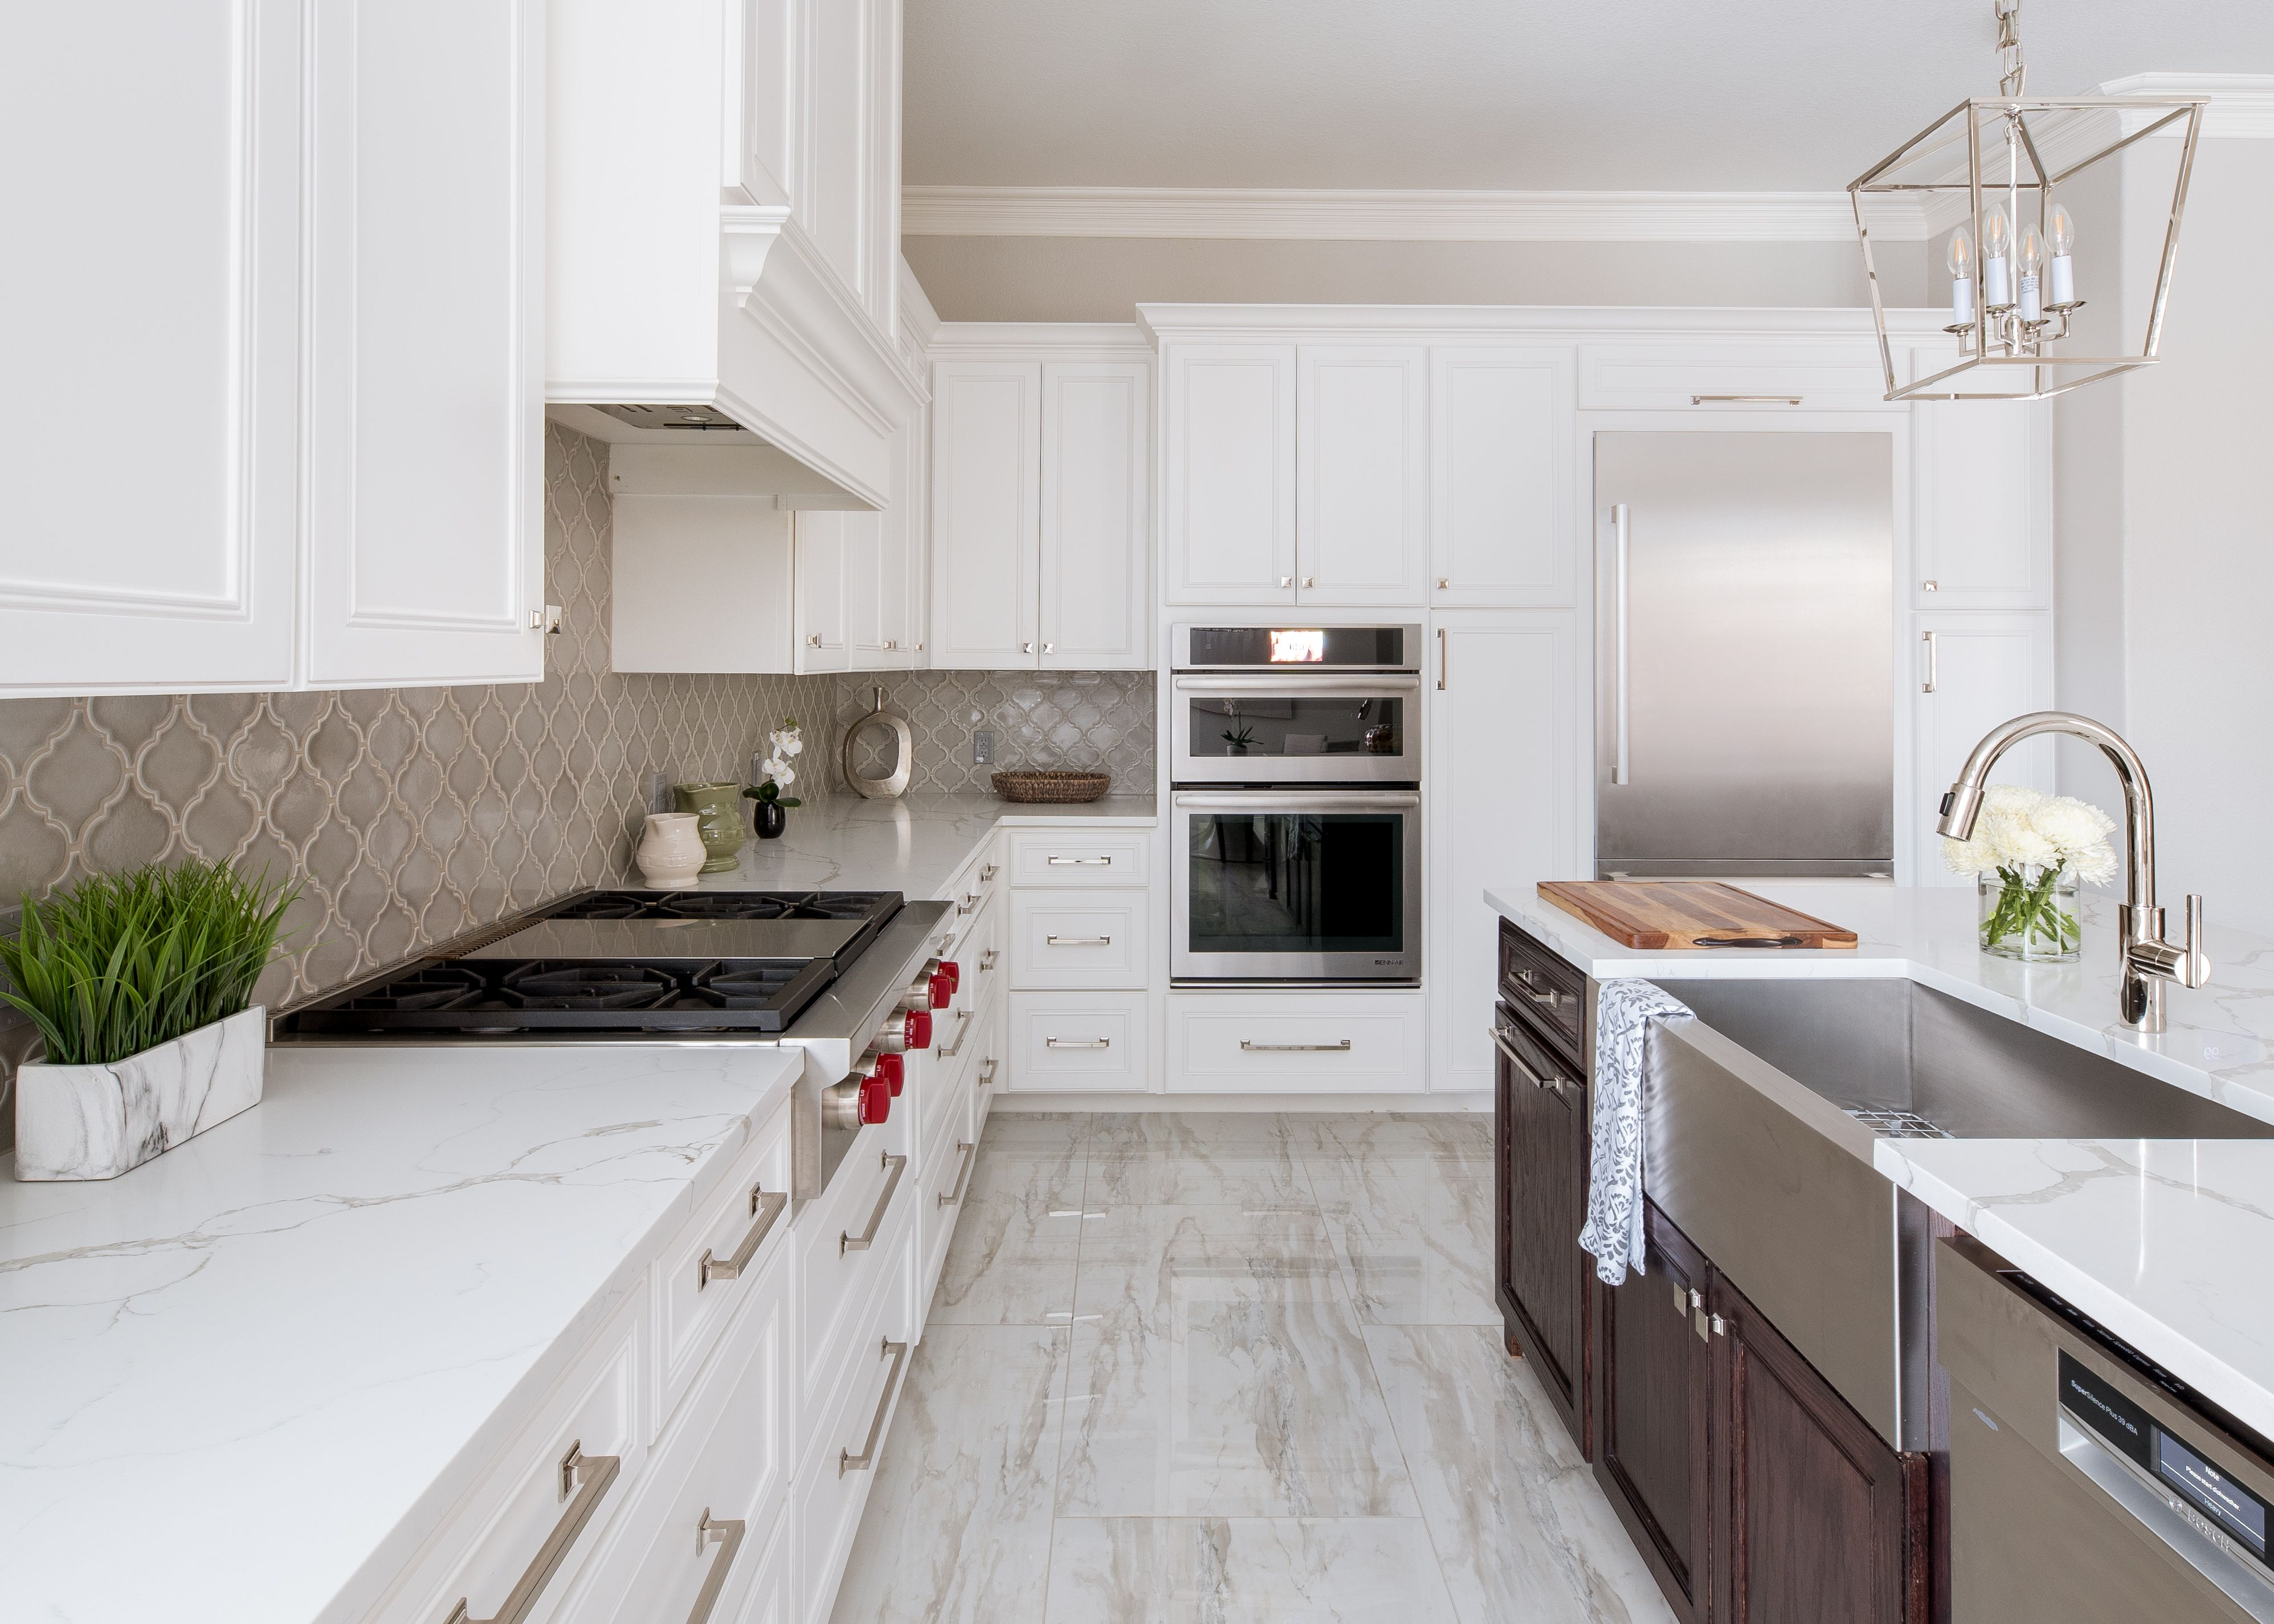 Custom Kitchen With Framed Beaded Cabinets Gray Arabesque Tile Backsplash White Quartz Countertops Kitchen Tiles Backsplash Trendy Kitchen Tile Kitchen Tiles